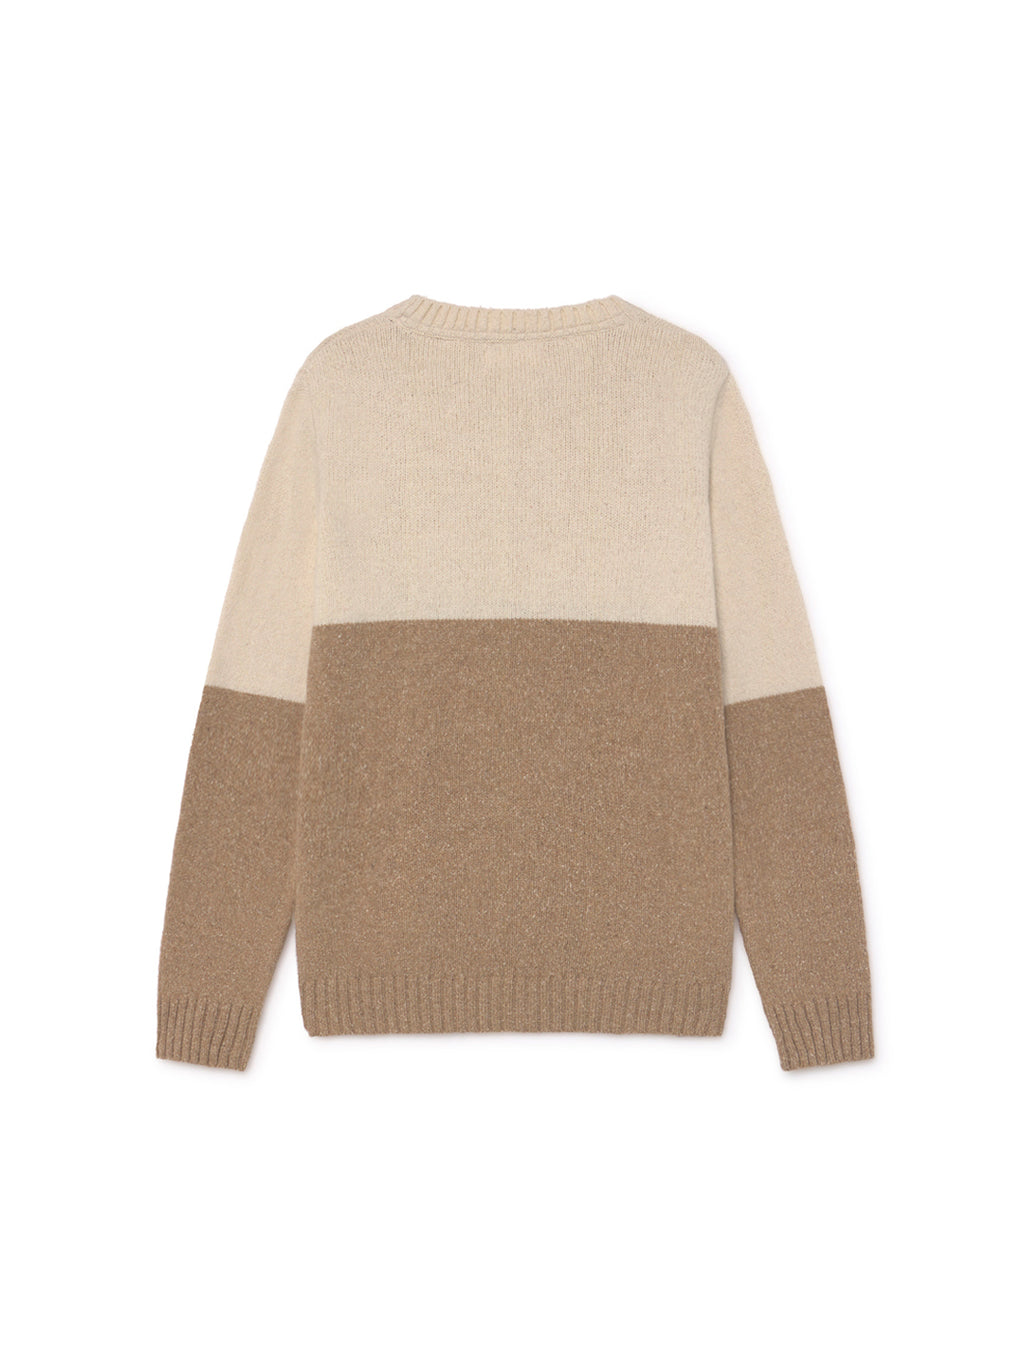 TWOTHIRDS Mens Knit: Jolo - Beige back